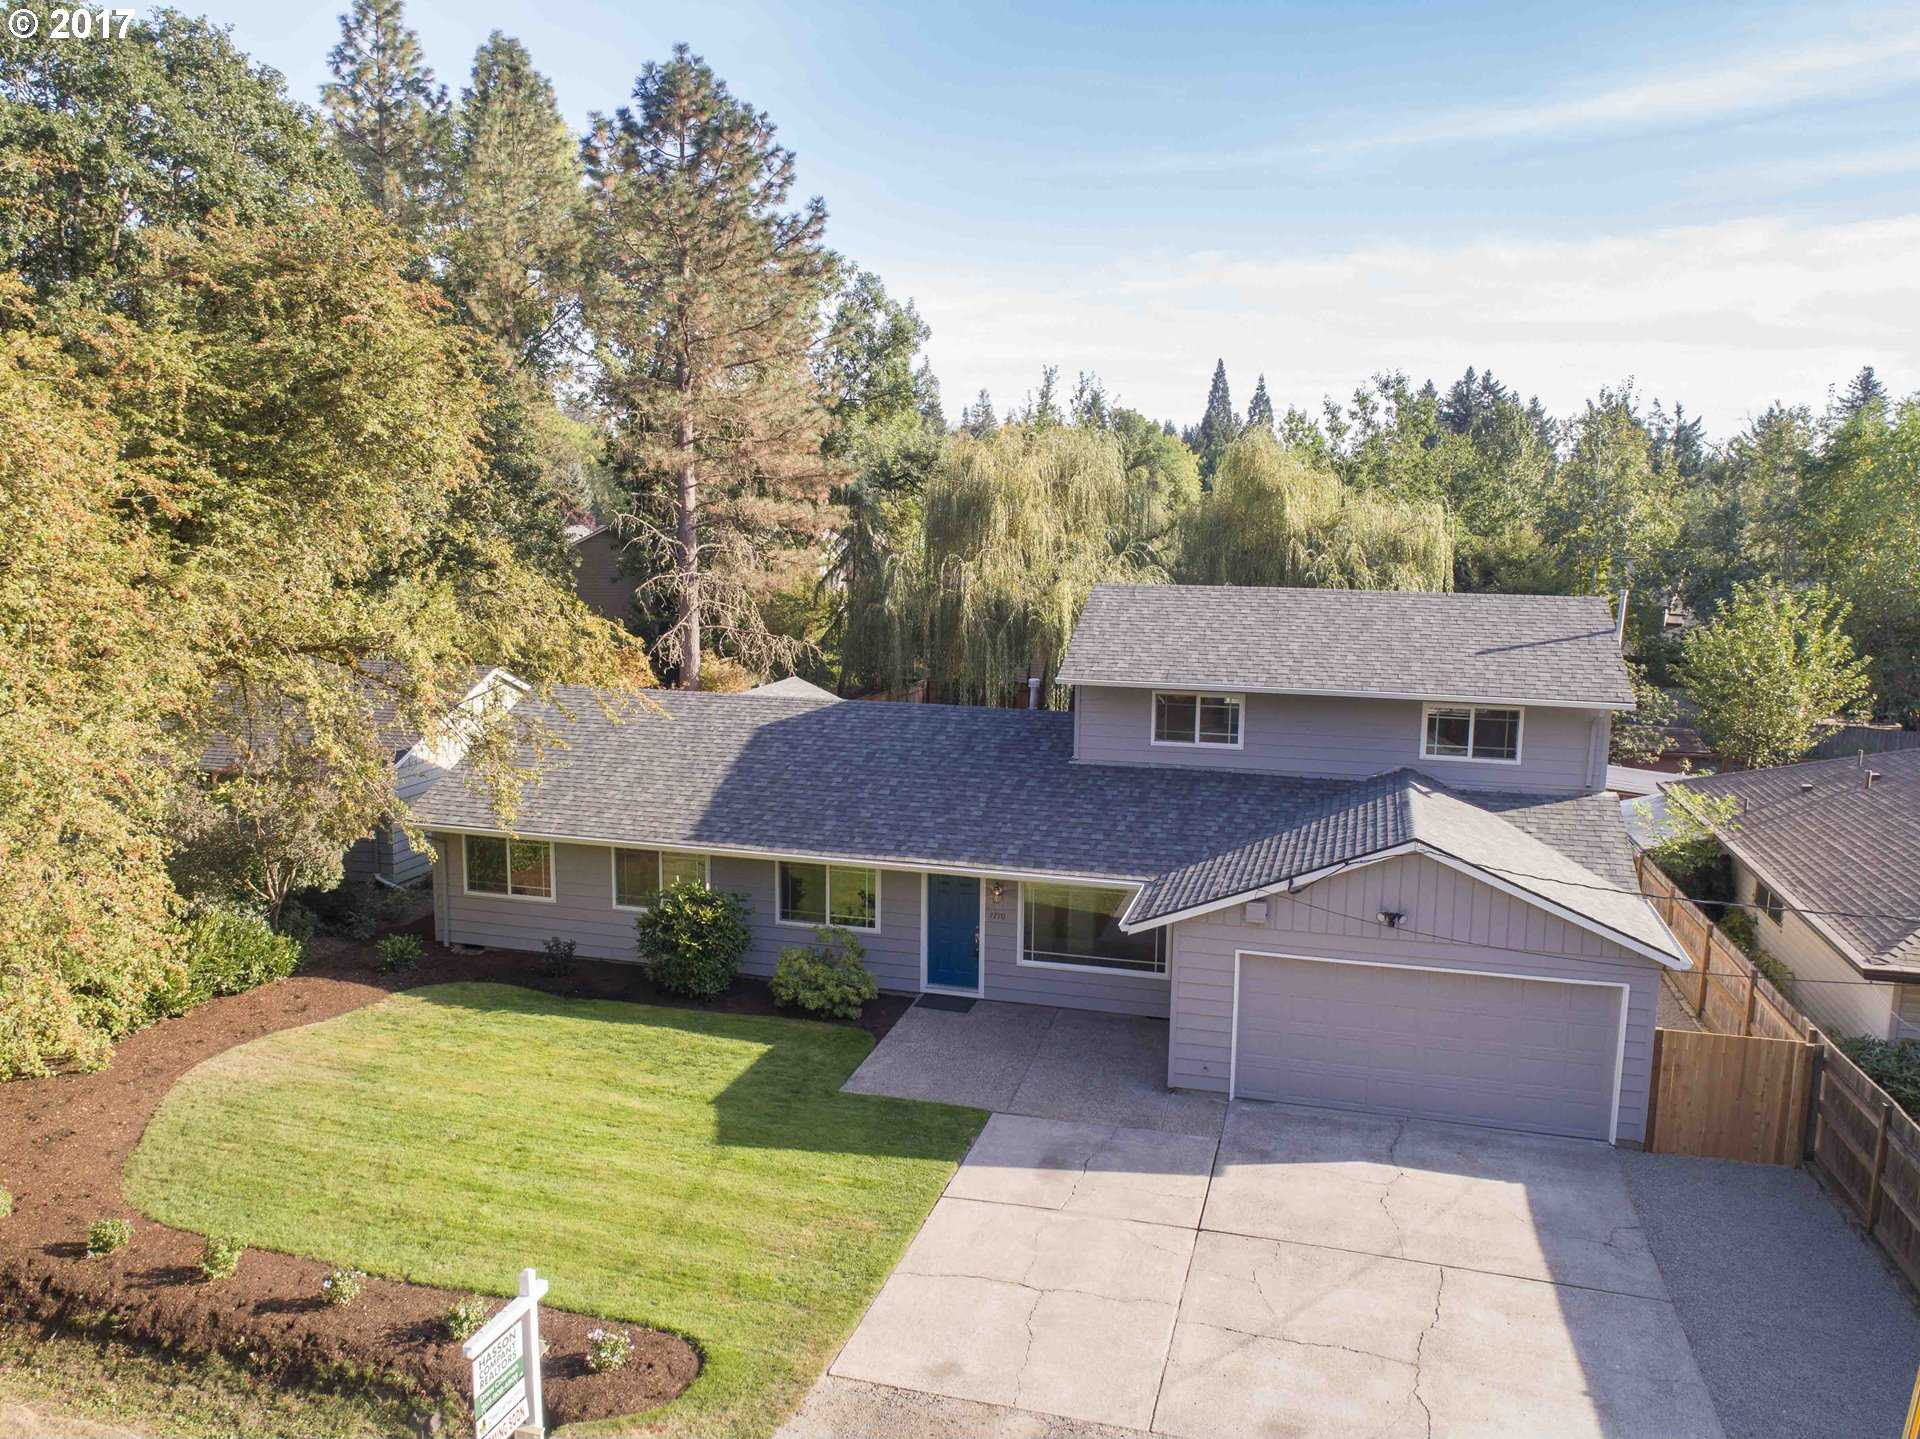 $550,000 - 5Br/3Ba -  for Sale in Garden Home, Portland